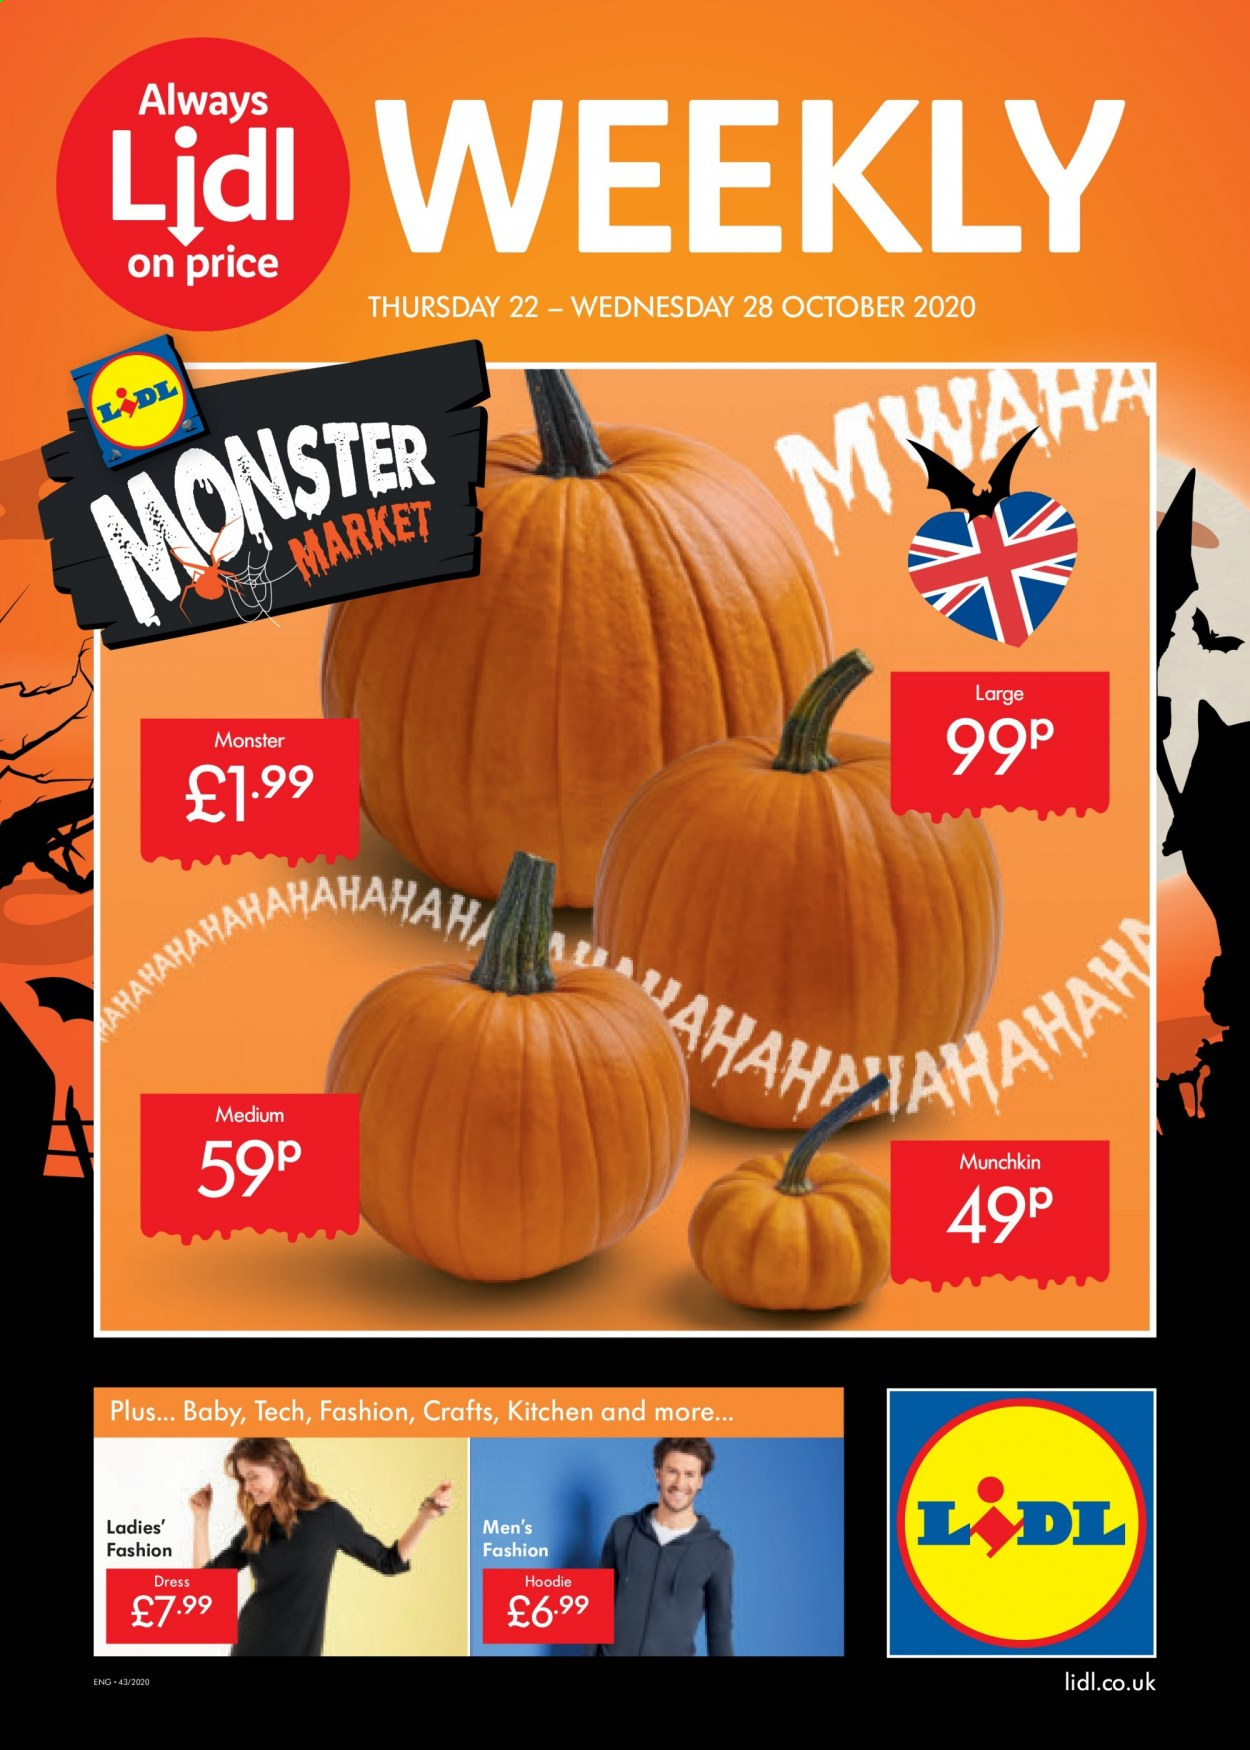 Lidl offer  - 22.10.2020 - 28.10.2020 - Sales products - always, dress, hoodie, kitchen, monster. Page 1.